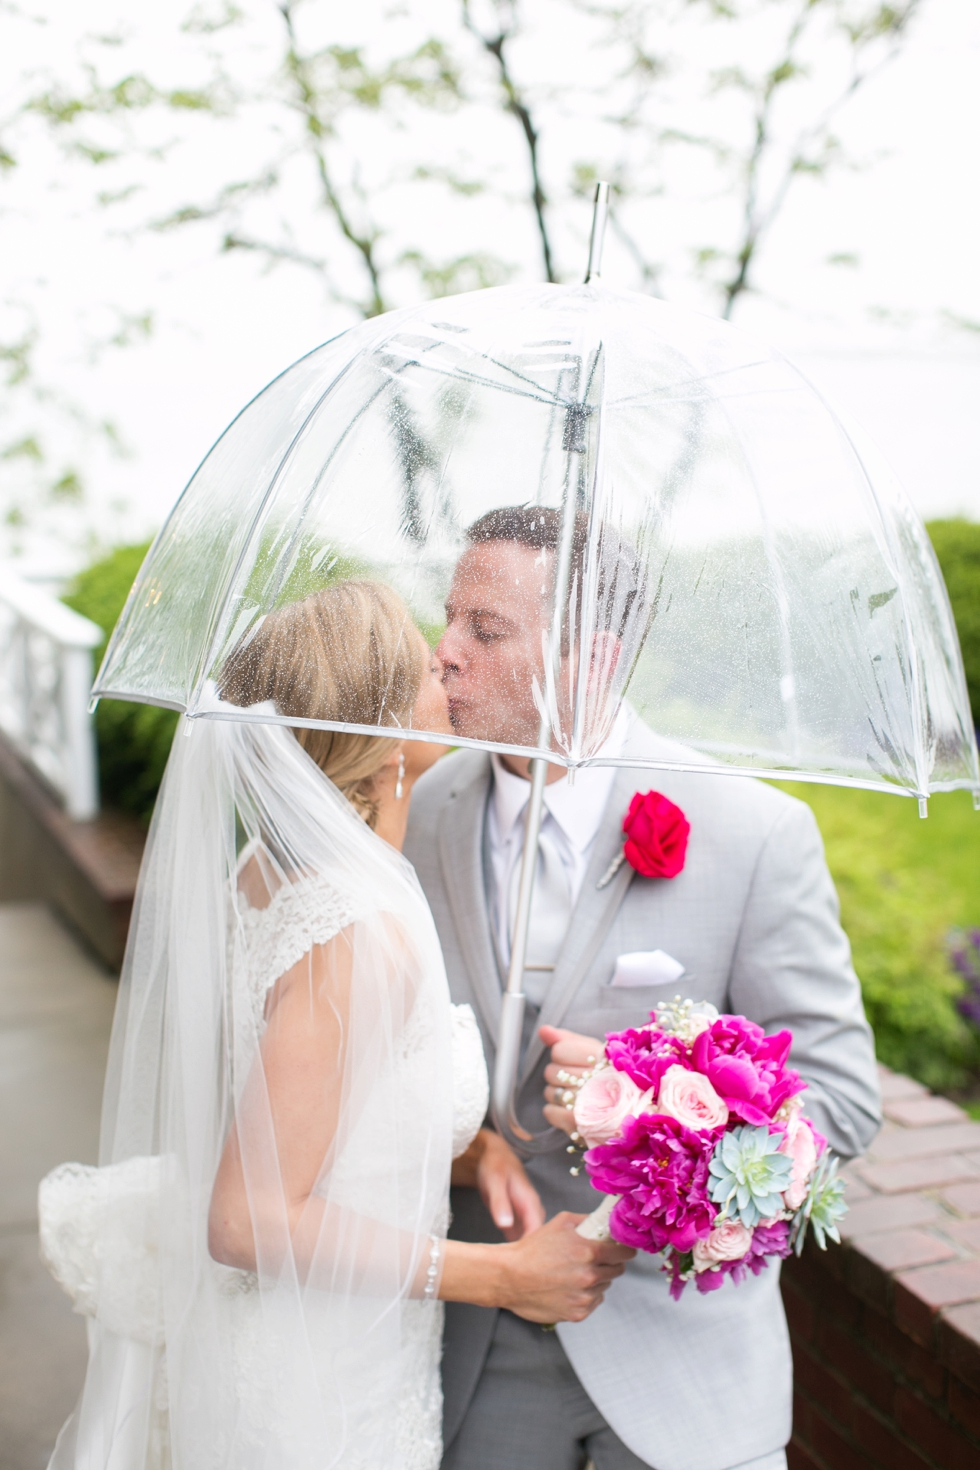 Philadelphia wedding photography - Chesapeake Bay Beach Club rainy wedding photographs